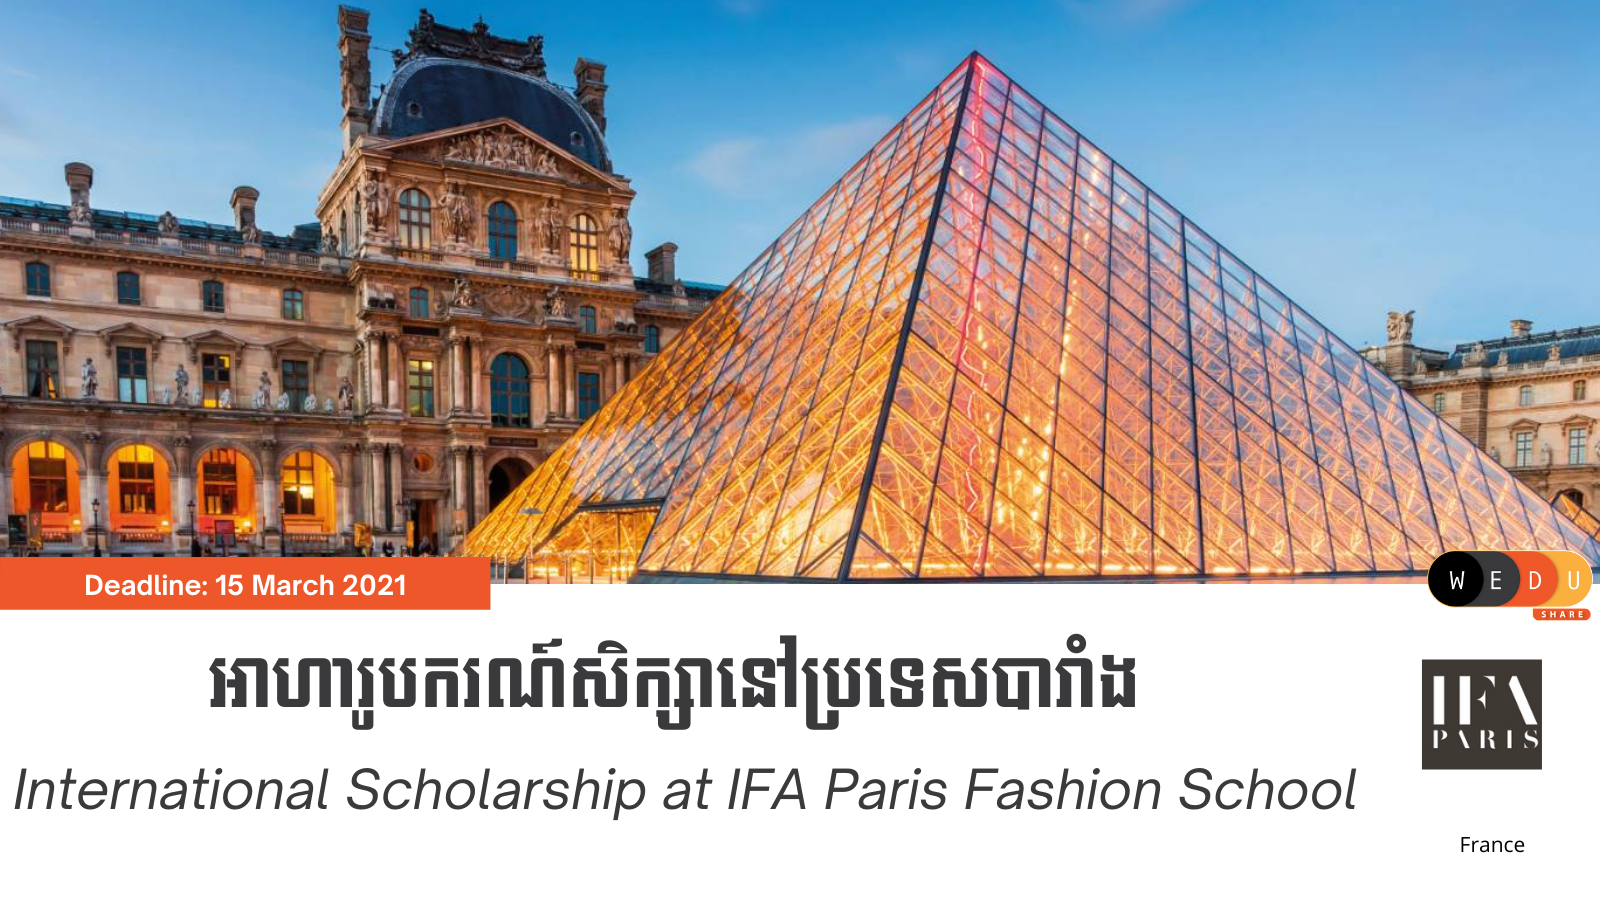 International Scholarship at IFA Paris Fashion School